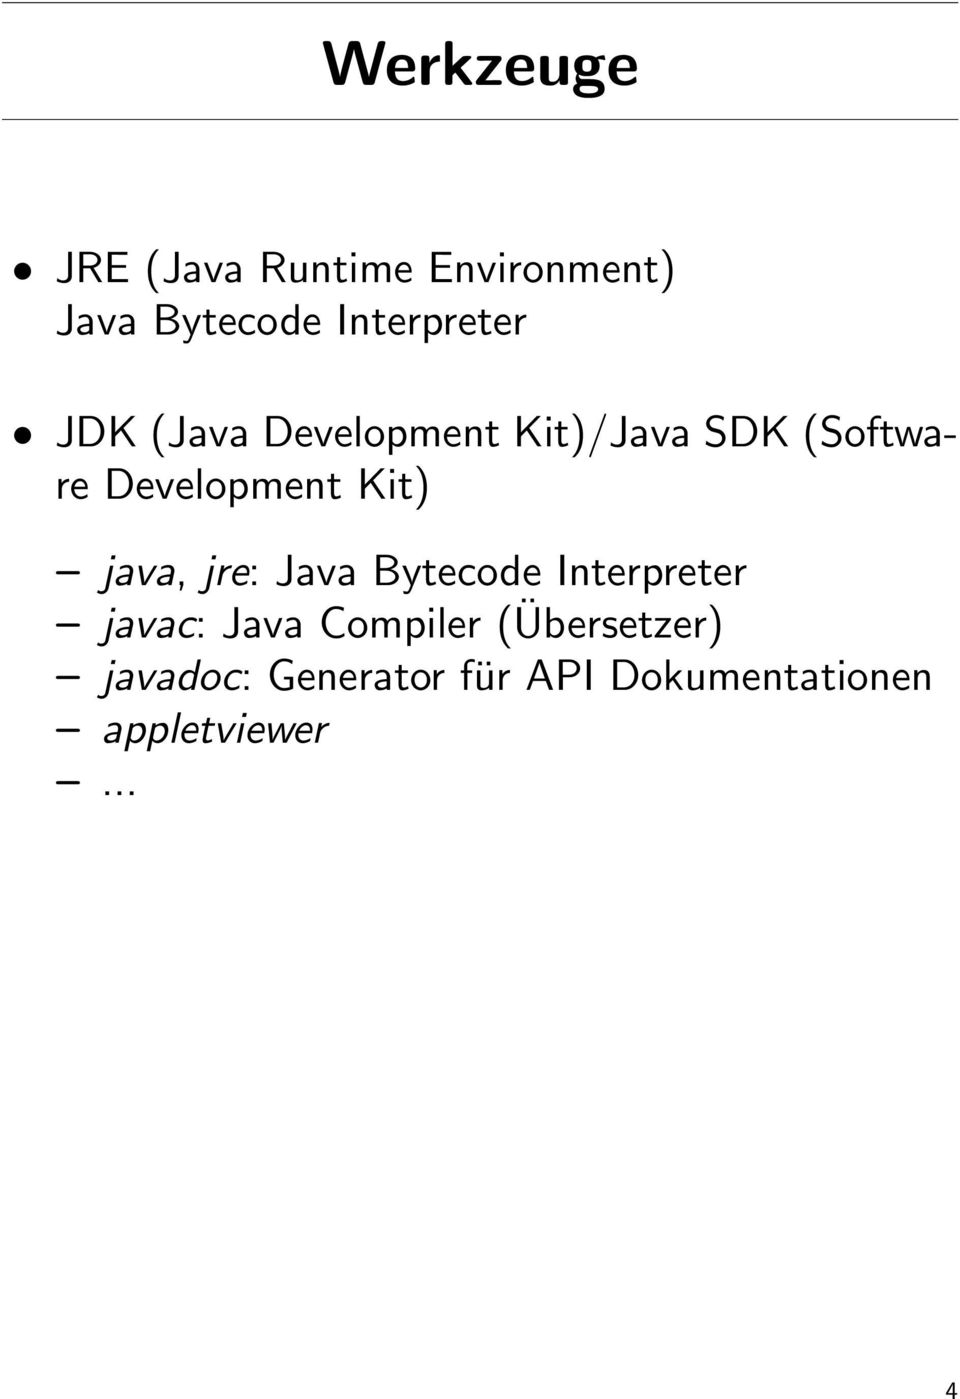 Development Kit) java, jre: Java Bytecode Interpreter javac: Java